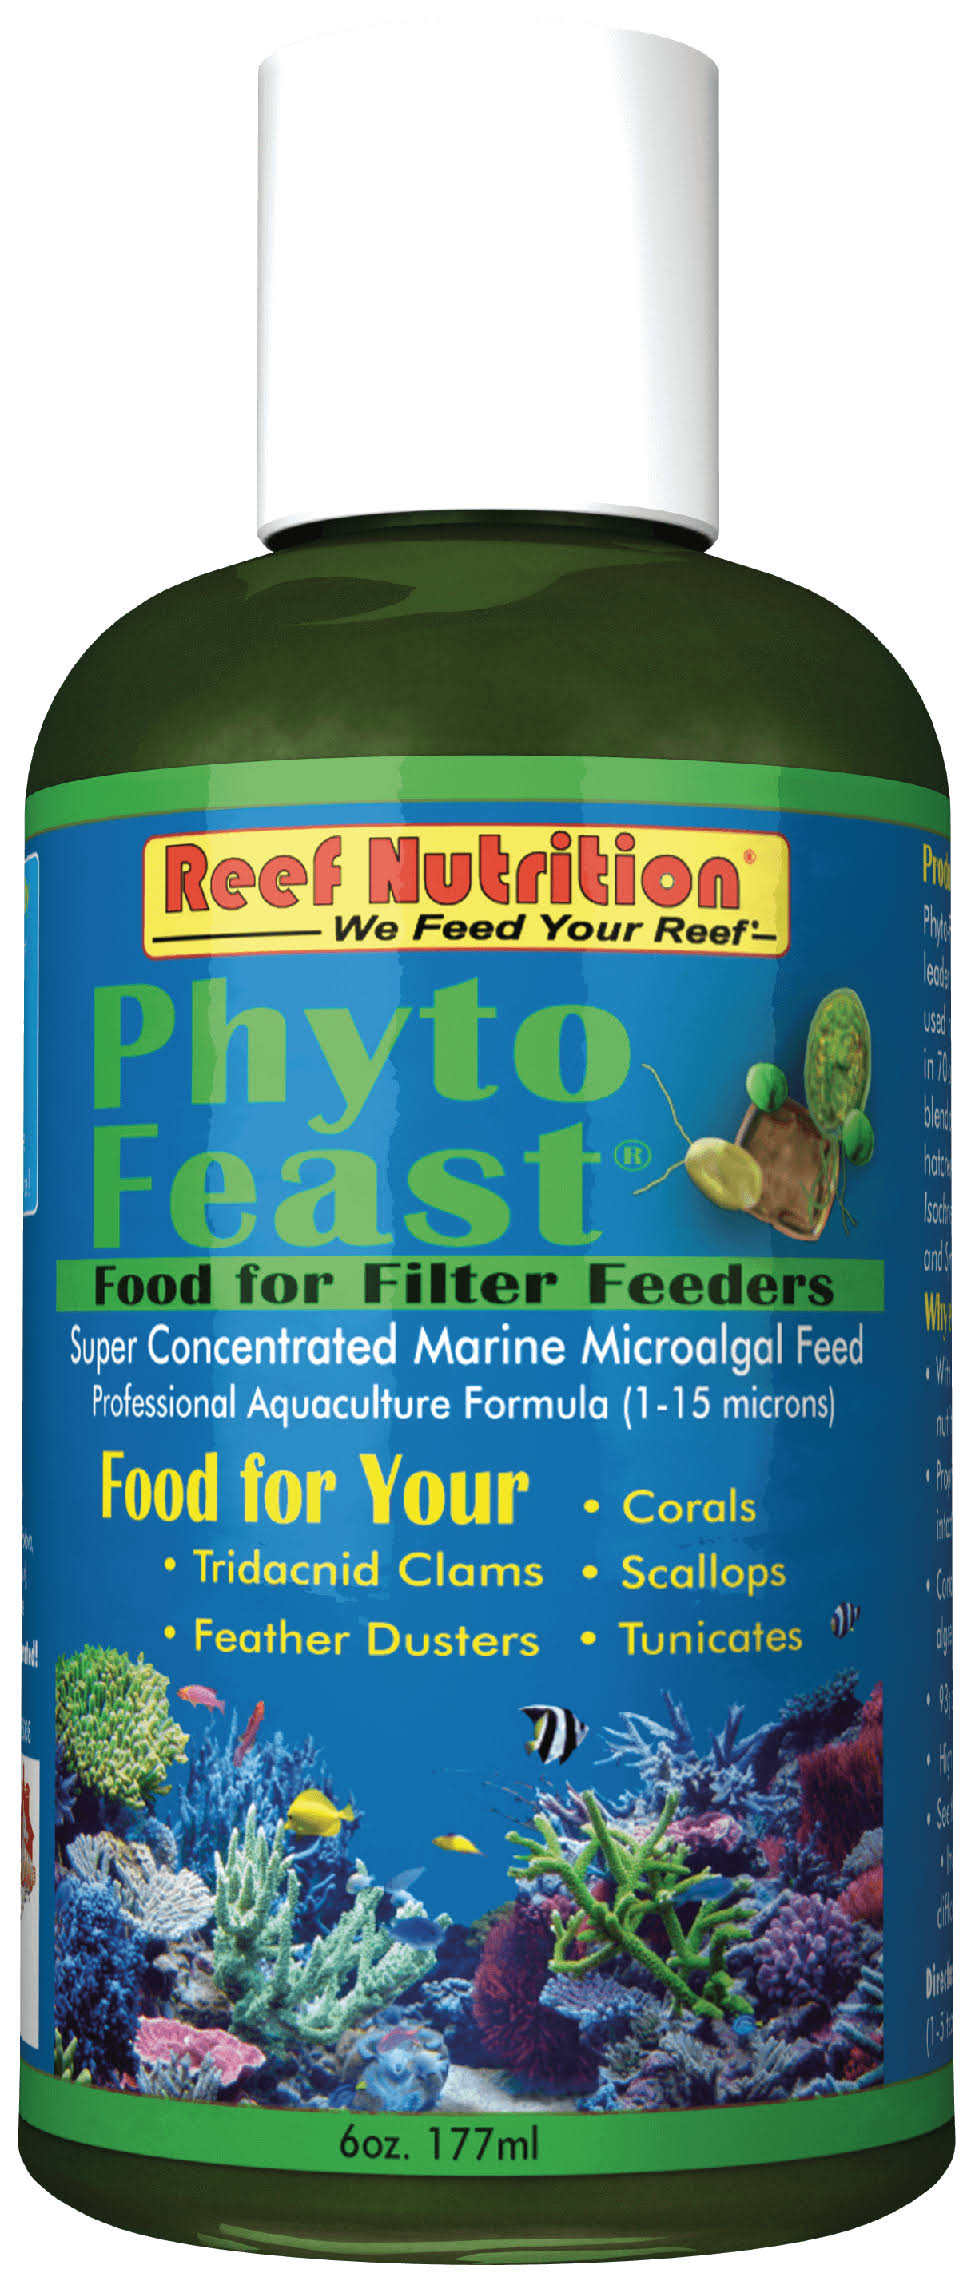 Reef Nutrition Phyto-Feast Food for Filter Feeders - 6oz